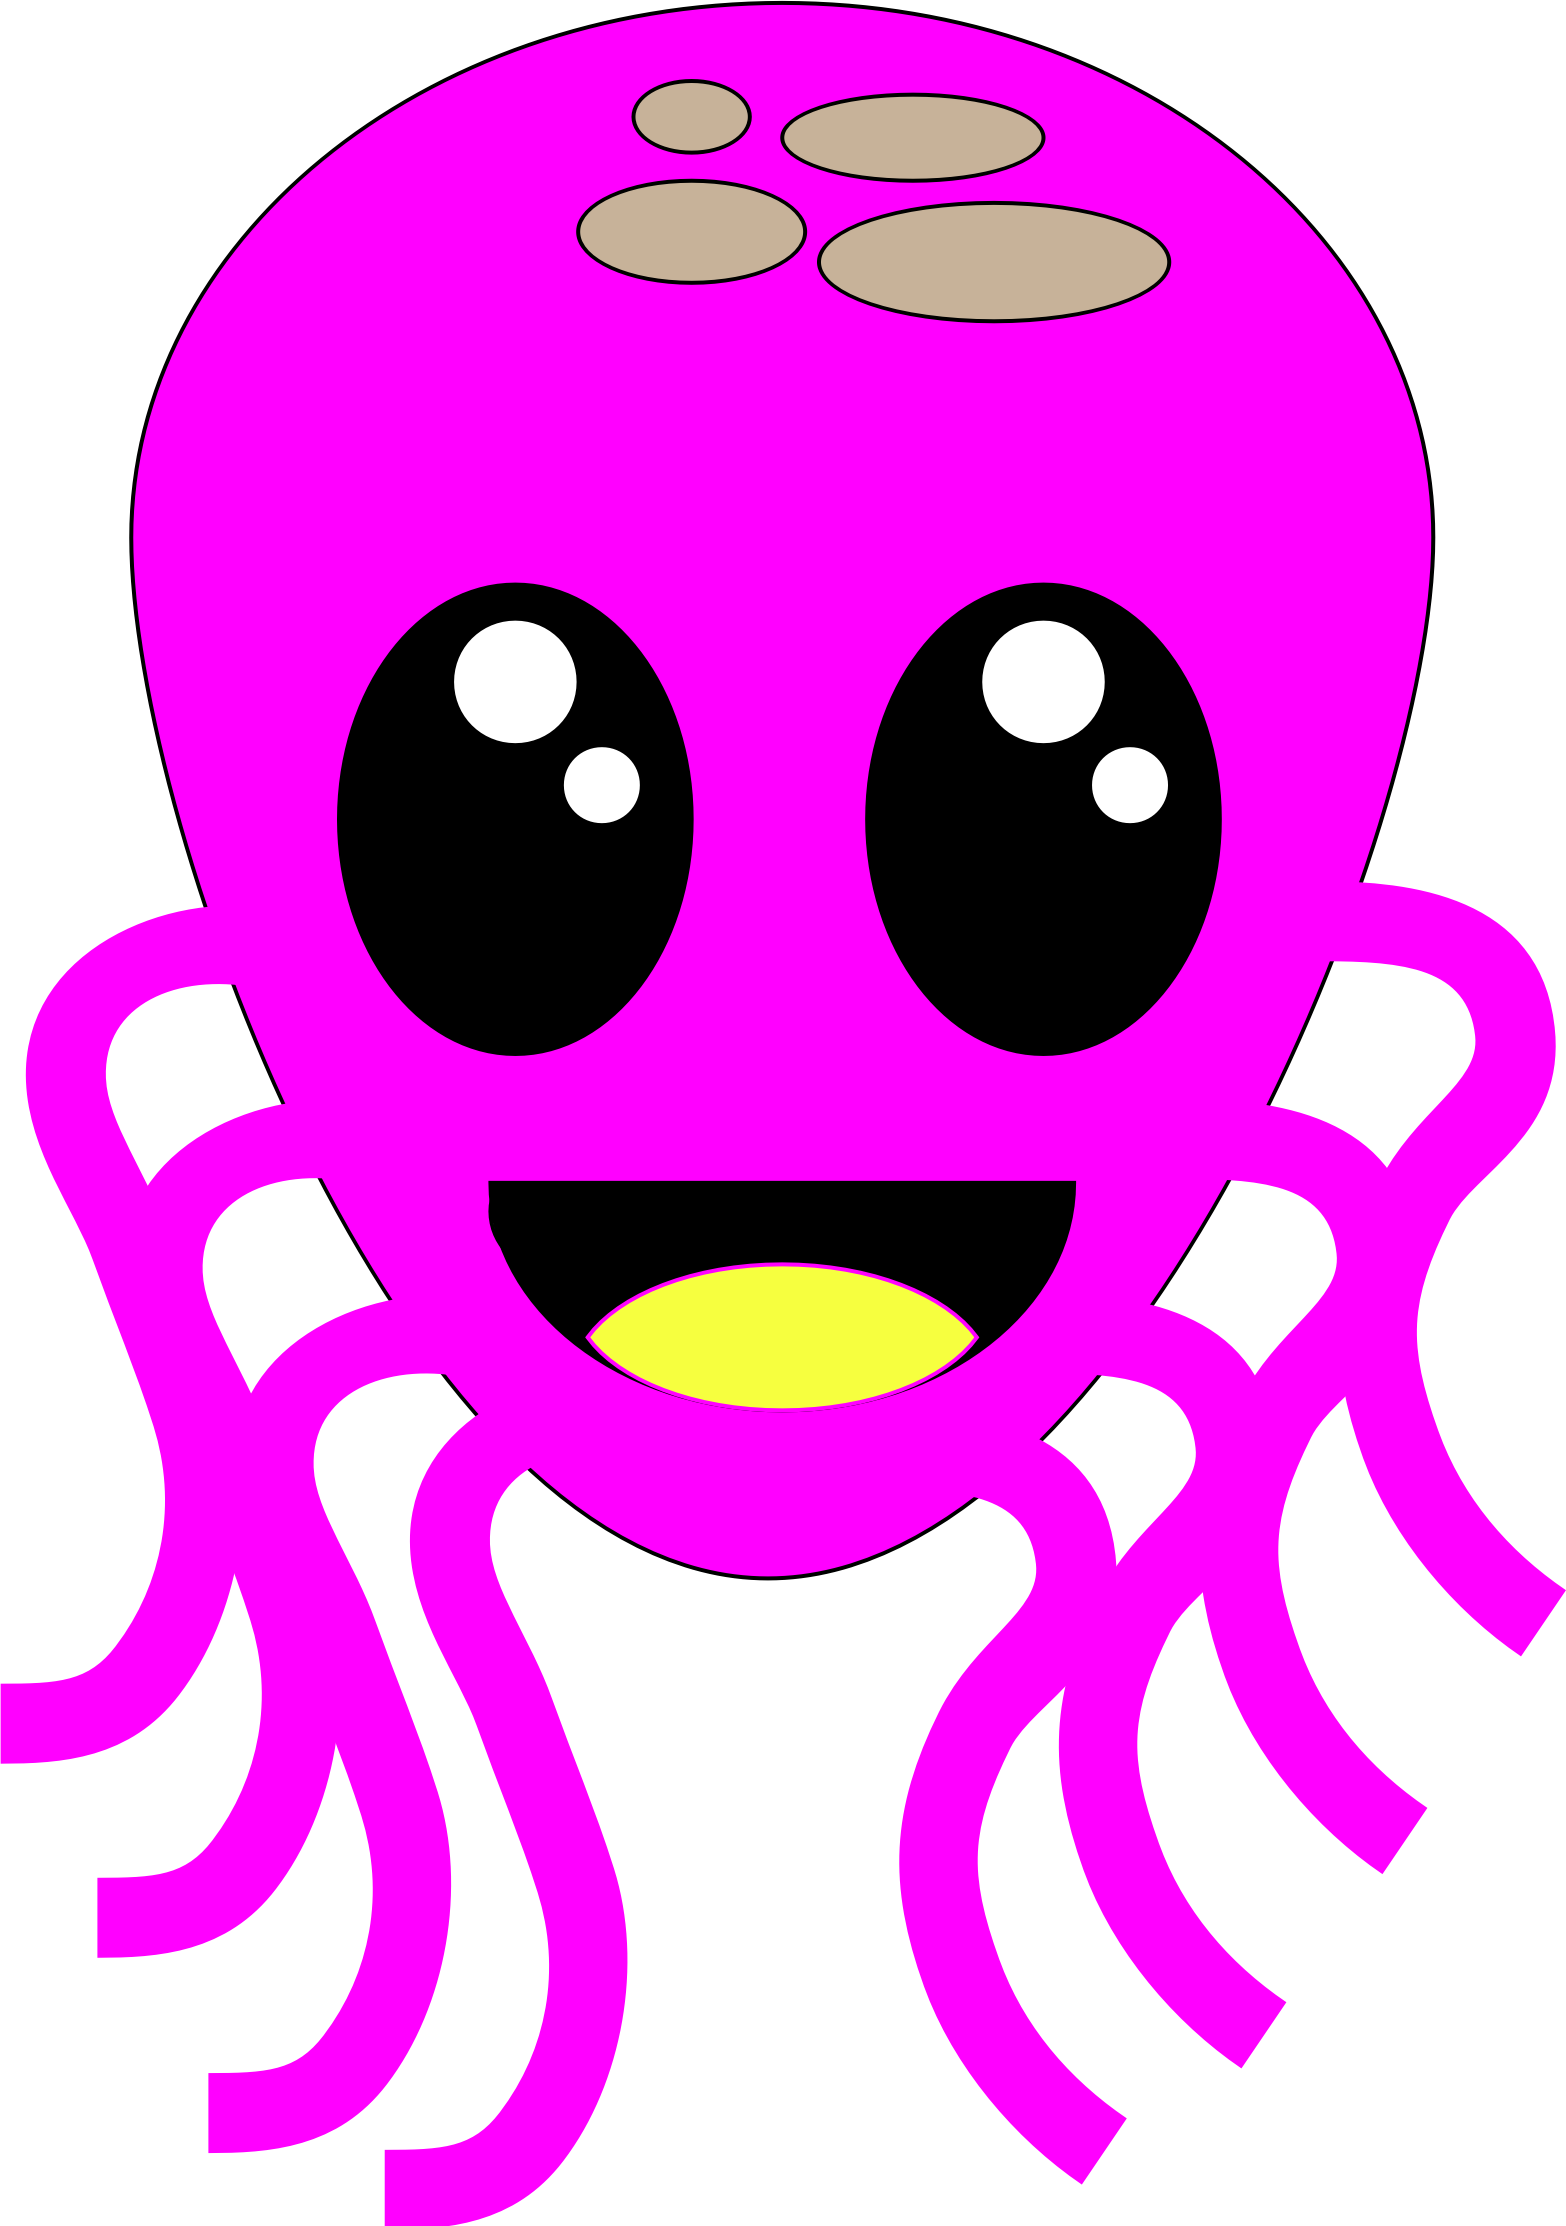 Octopus by carson.tks02